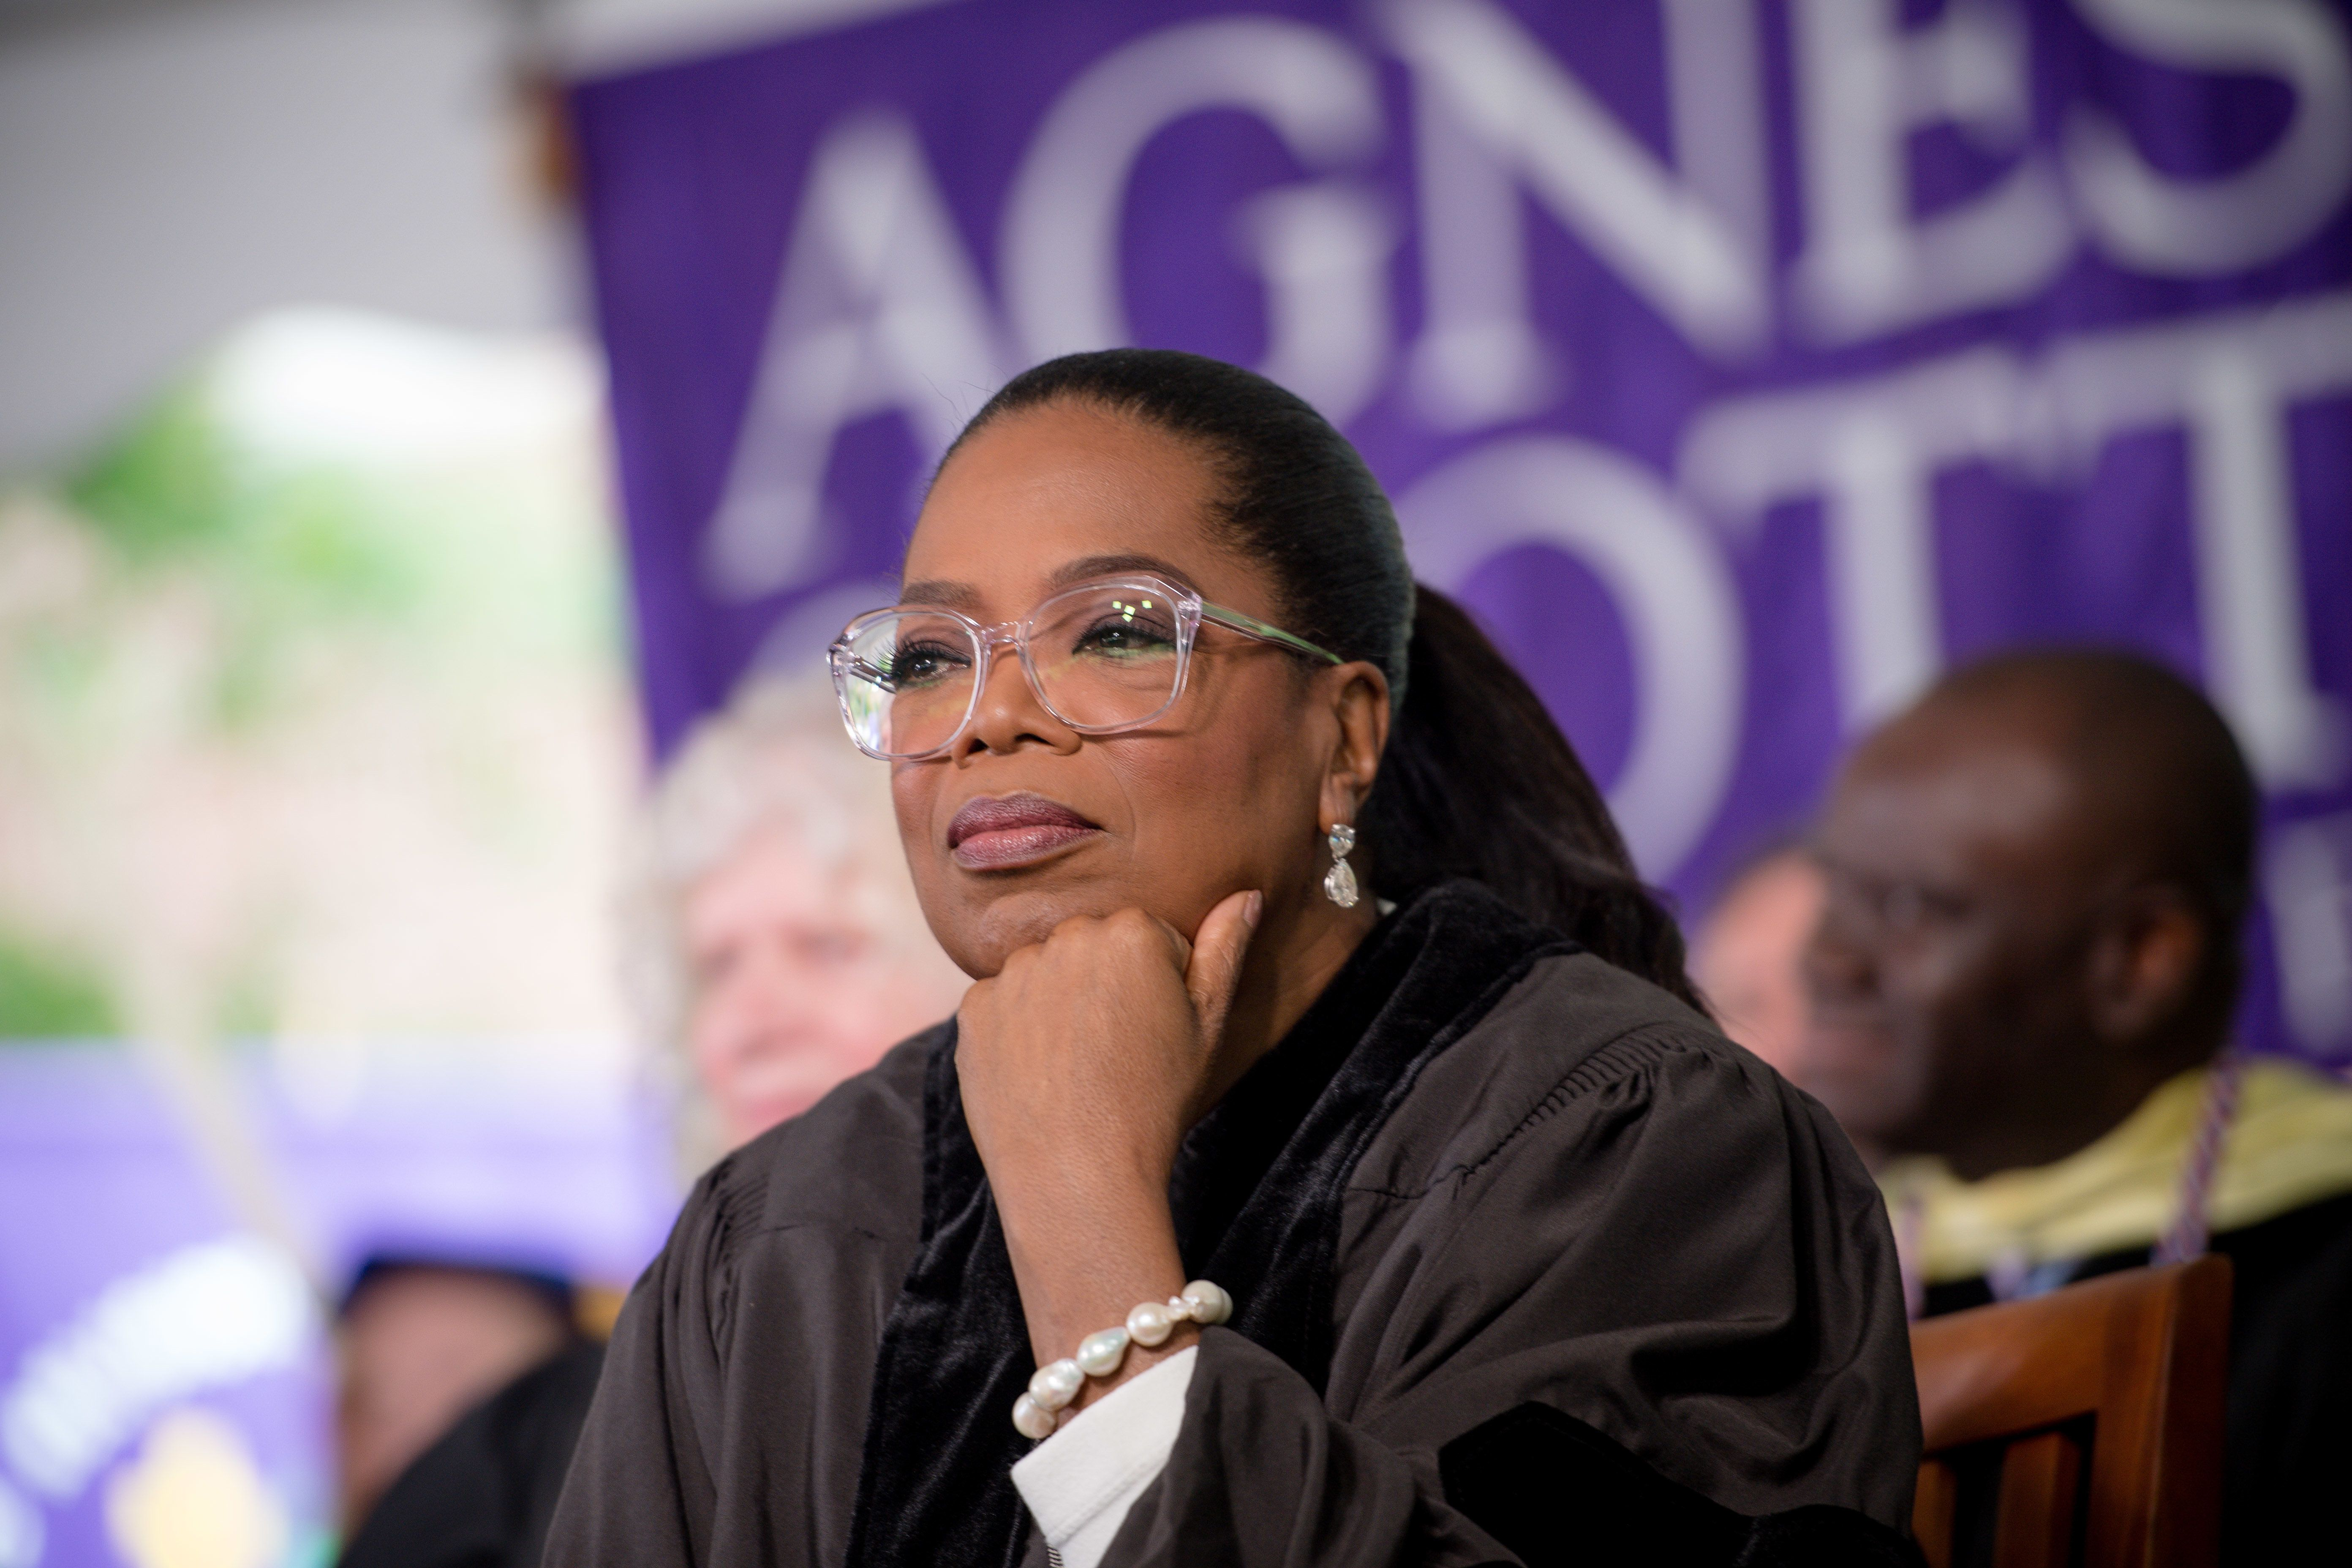 DECATUR, GA - MAY 13:  Oprah Winfrey on stage during the Agnes Scott College 2017 Commencement at Agnes Scott College on May 13, 2017 in Decatur, Georgia.  (Photo by Marcus Ingram/WireImage)